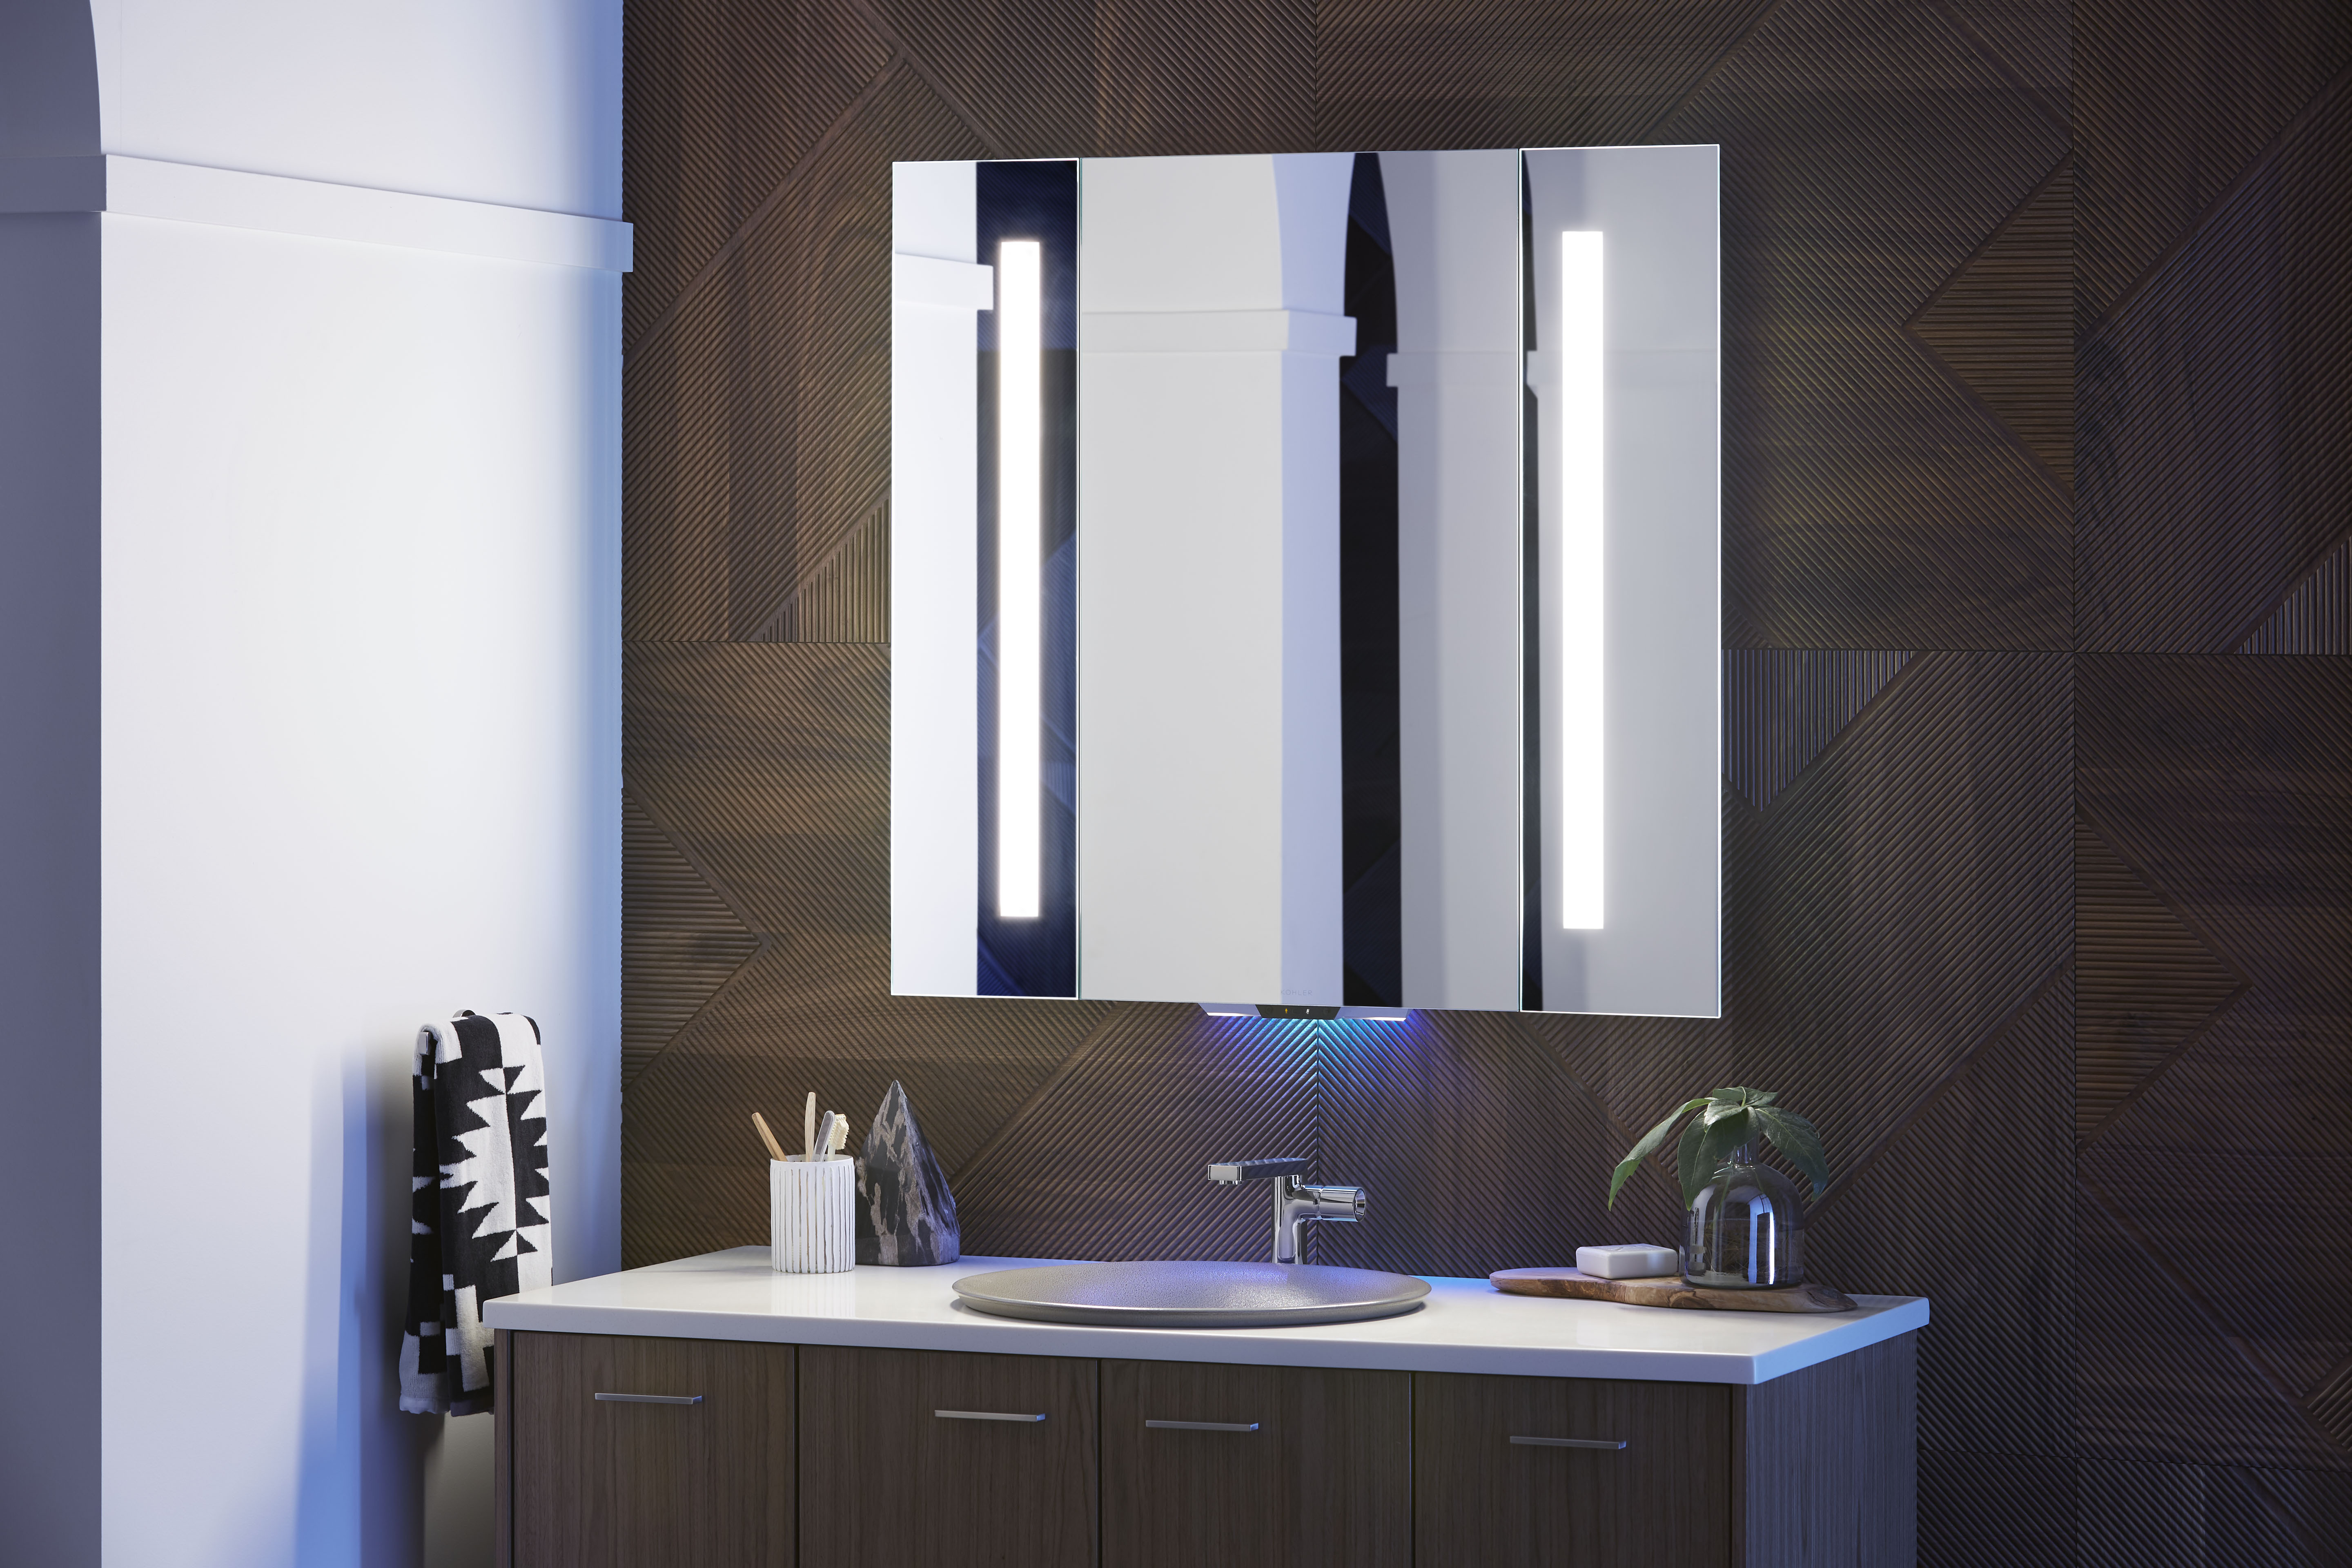 Kohler Introduces Voice-Command Technology into the Bathroom ...